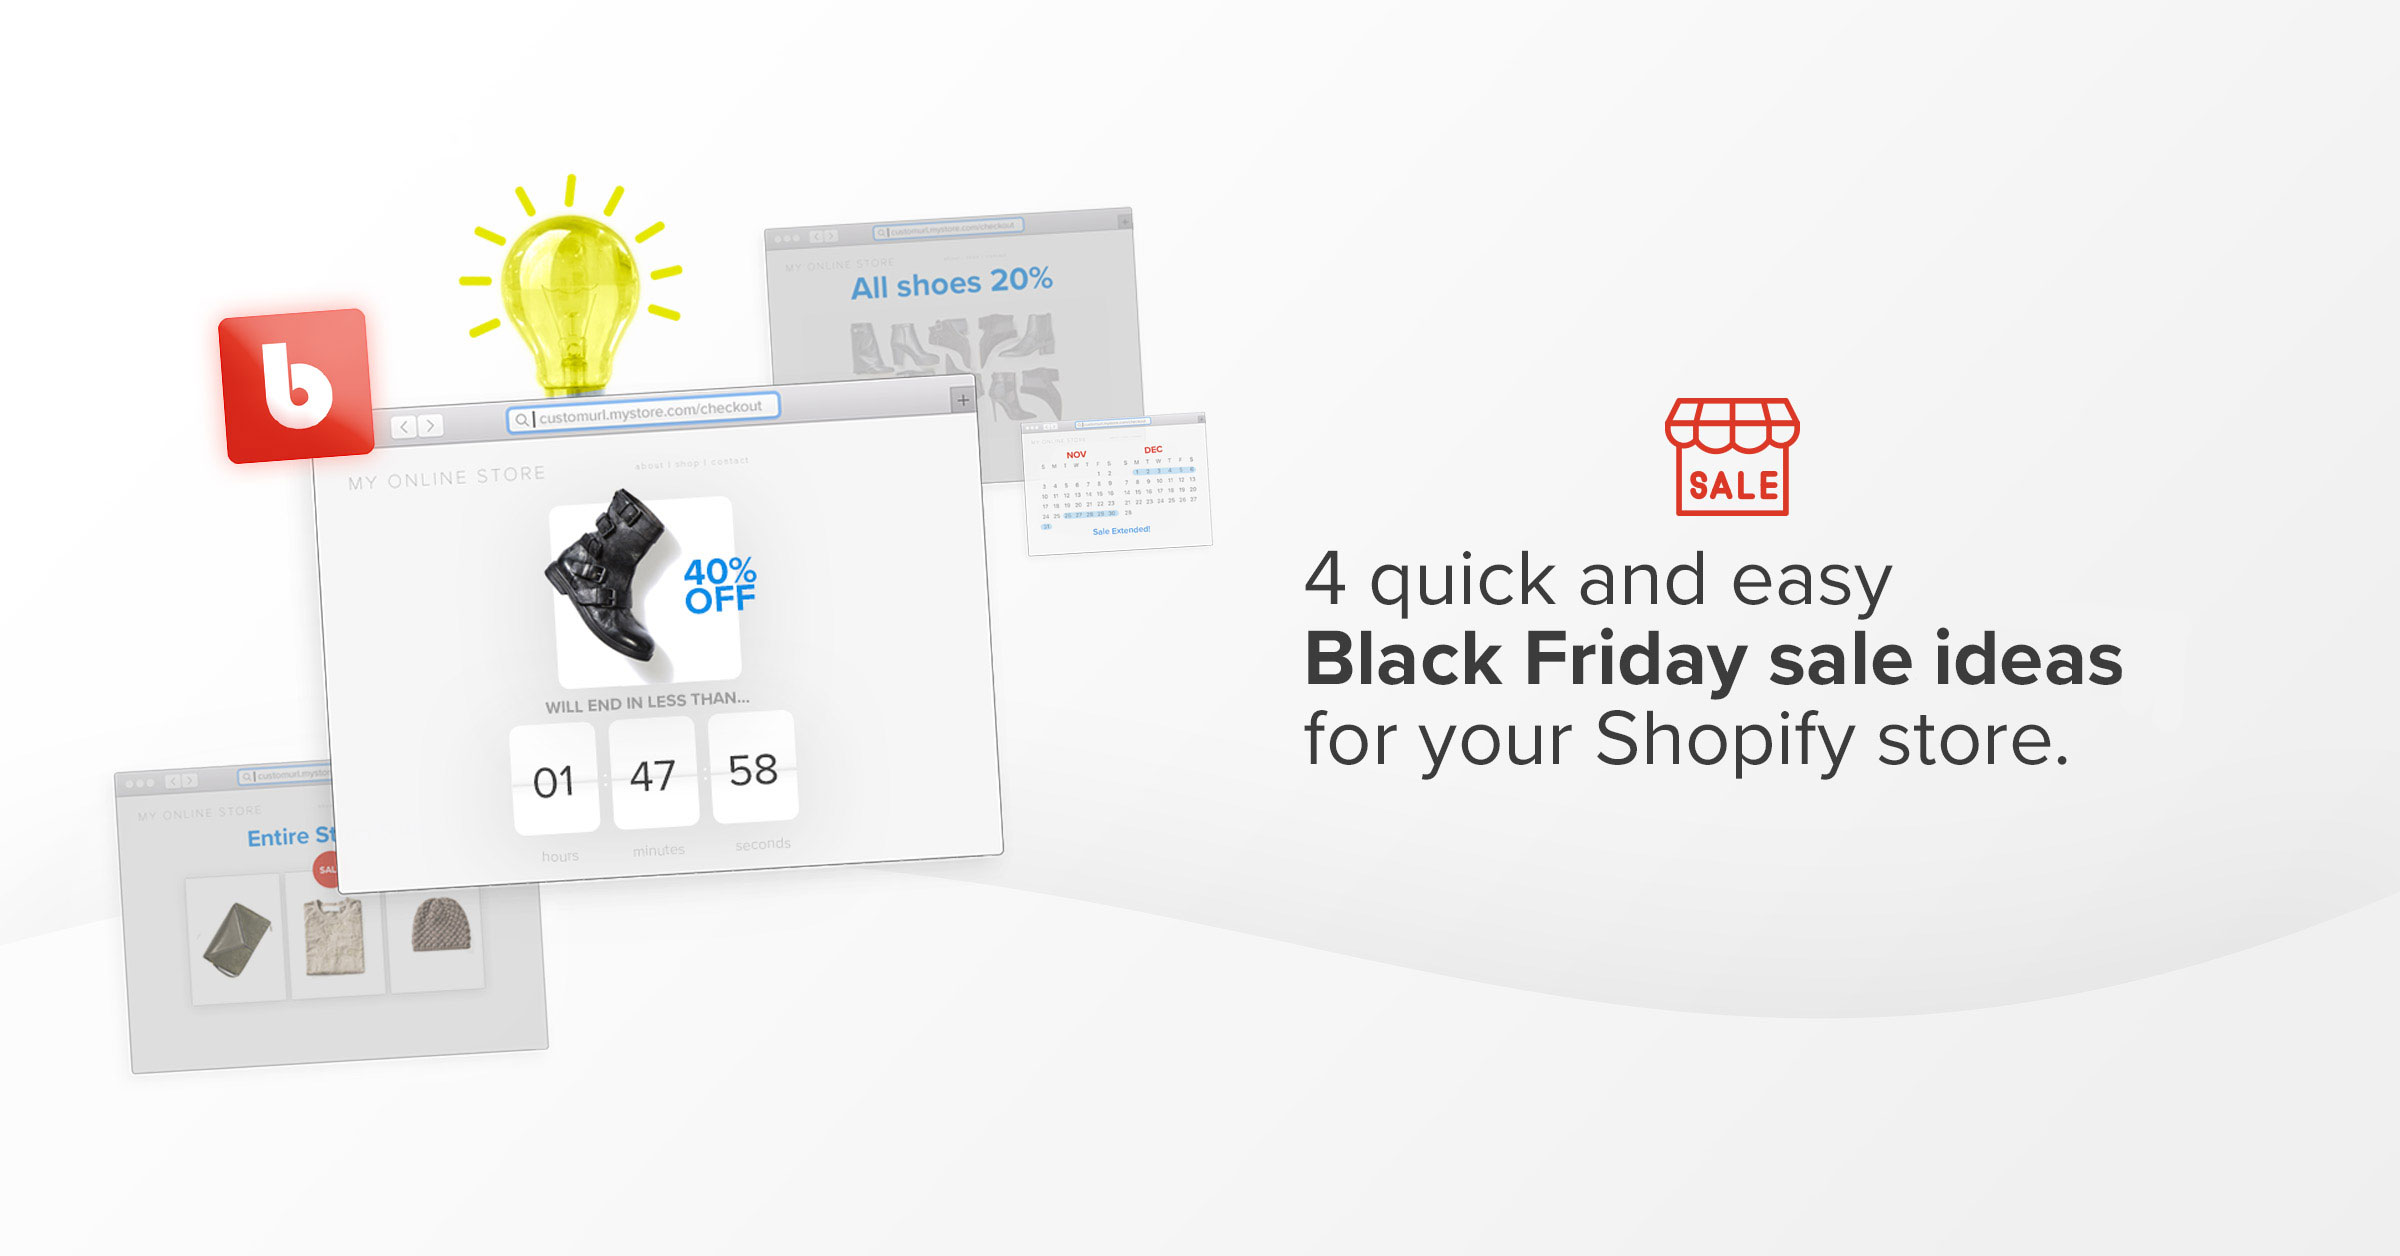 4-quick-and-easy-black-friday-sales-ideas3